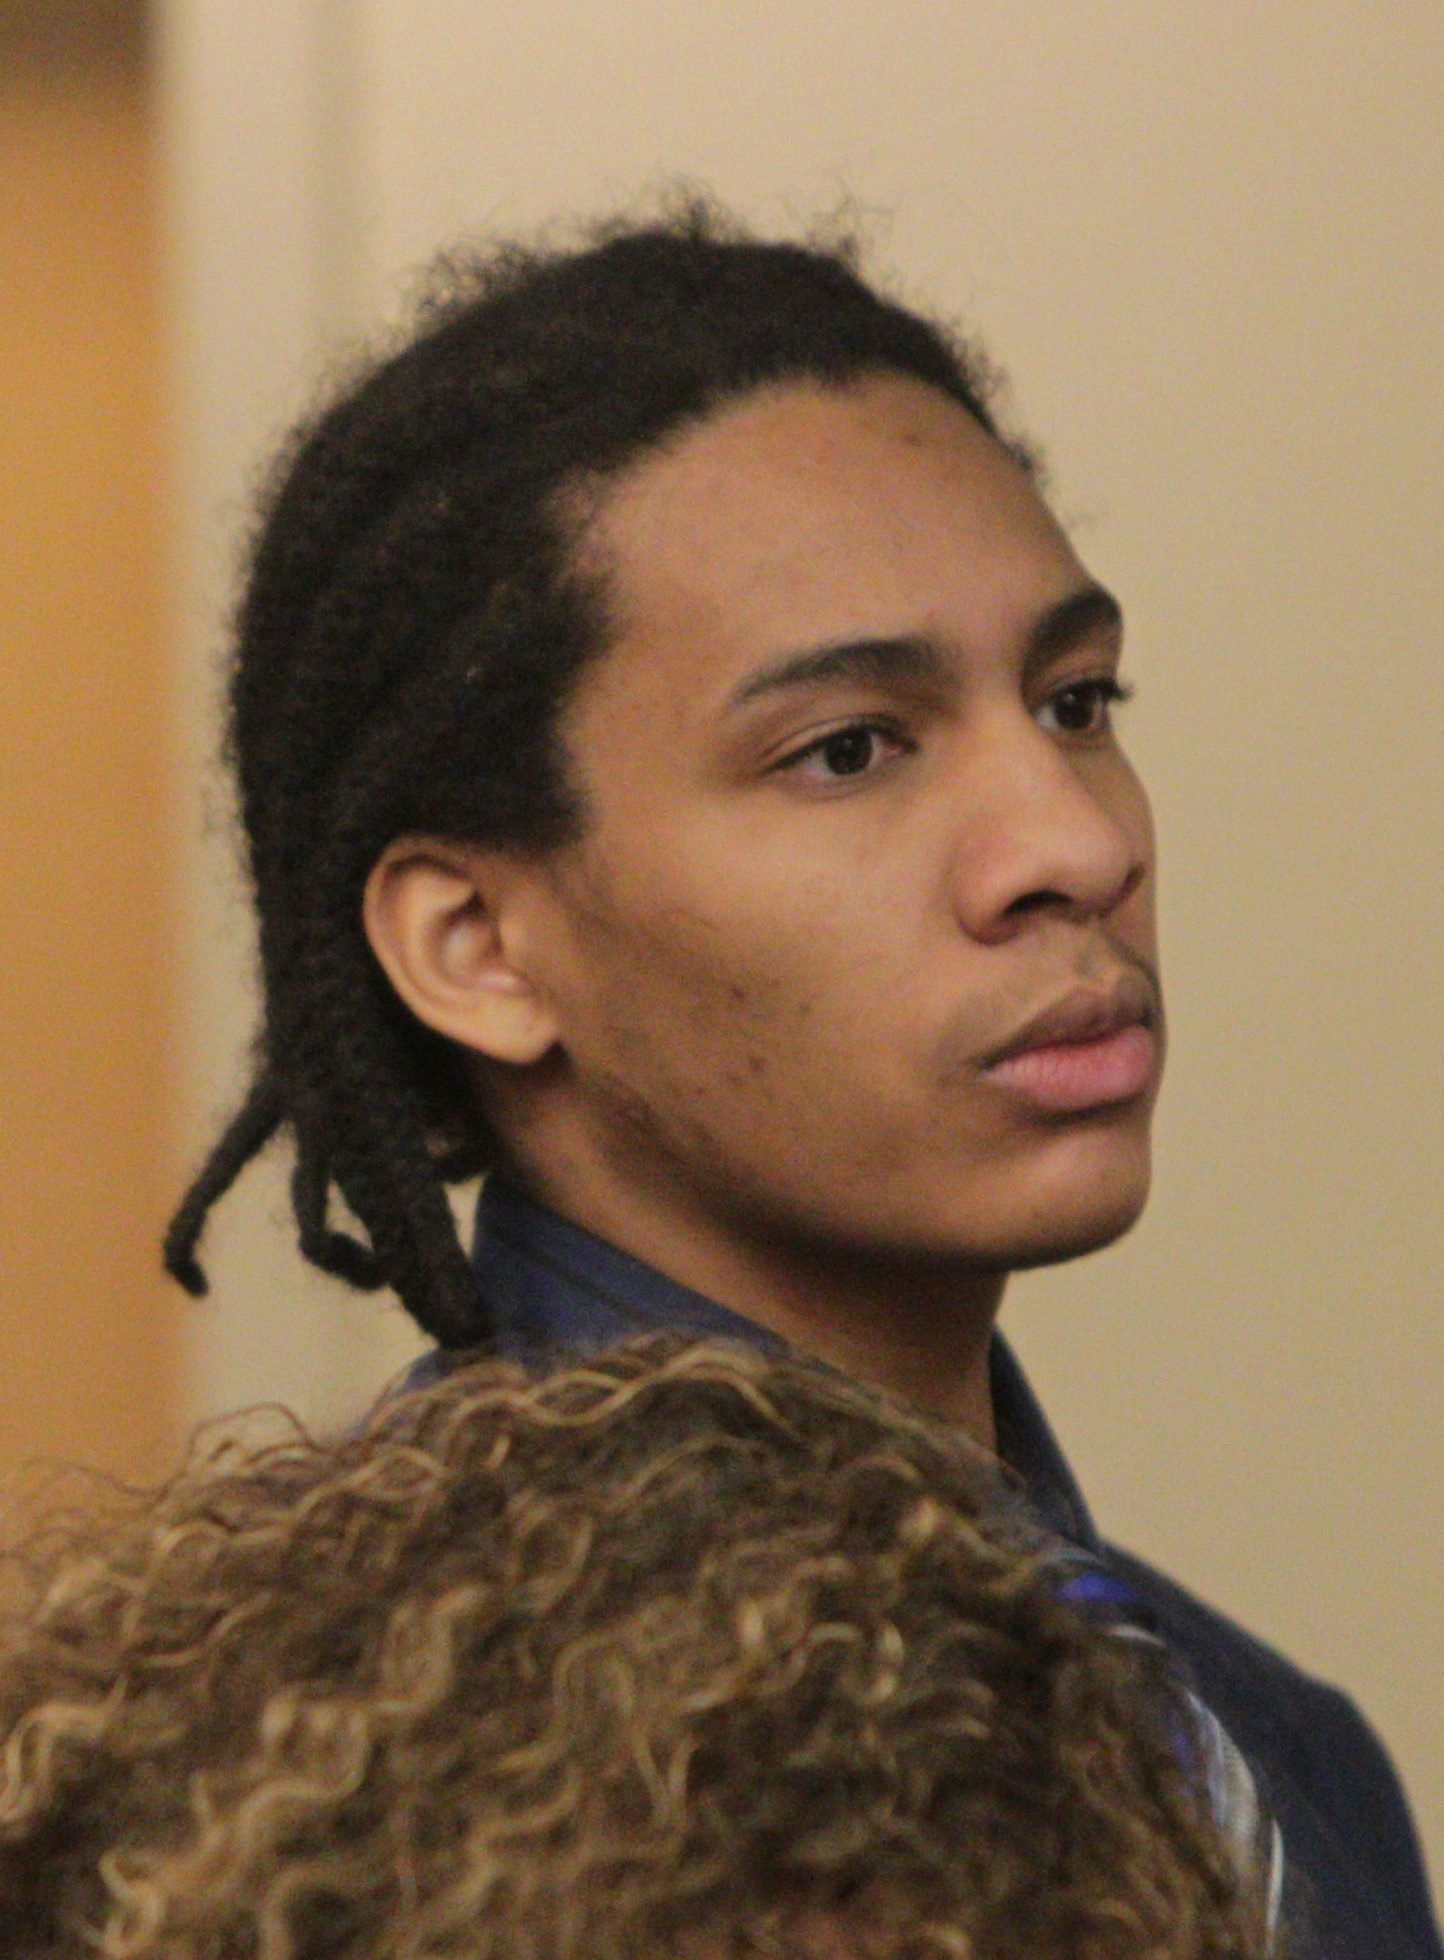 The sentencing of Darshawn Morris was delayed because of motion by the defense, Thursday, April 17, 2014. They will reconvene at 2pm May 14.  (Sharon Cantillon/Buffalo News)